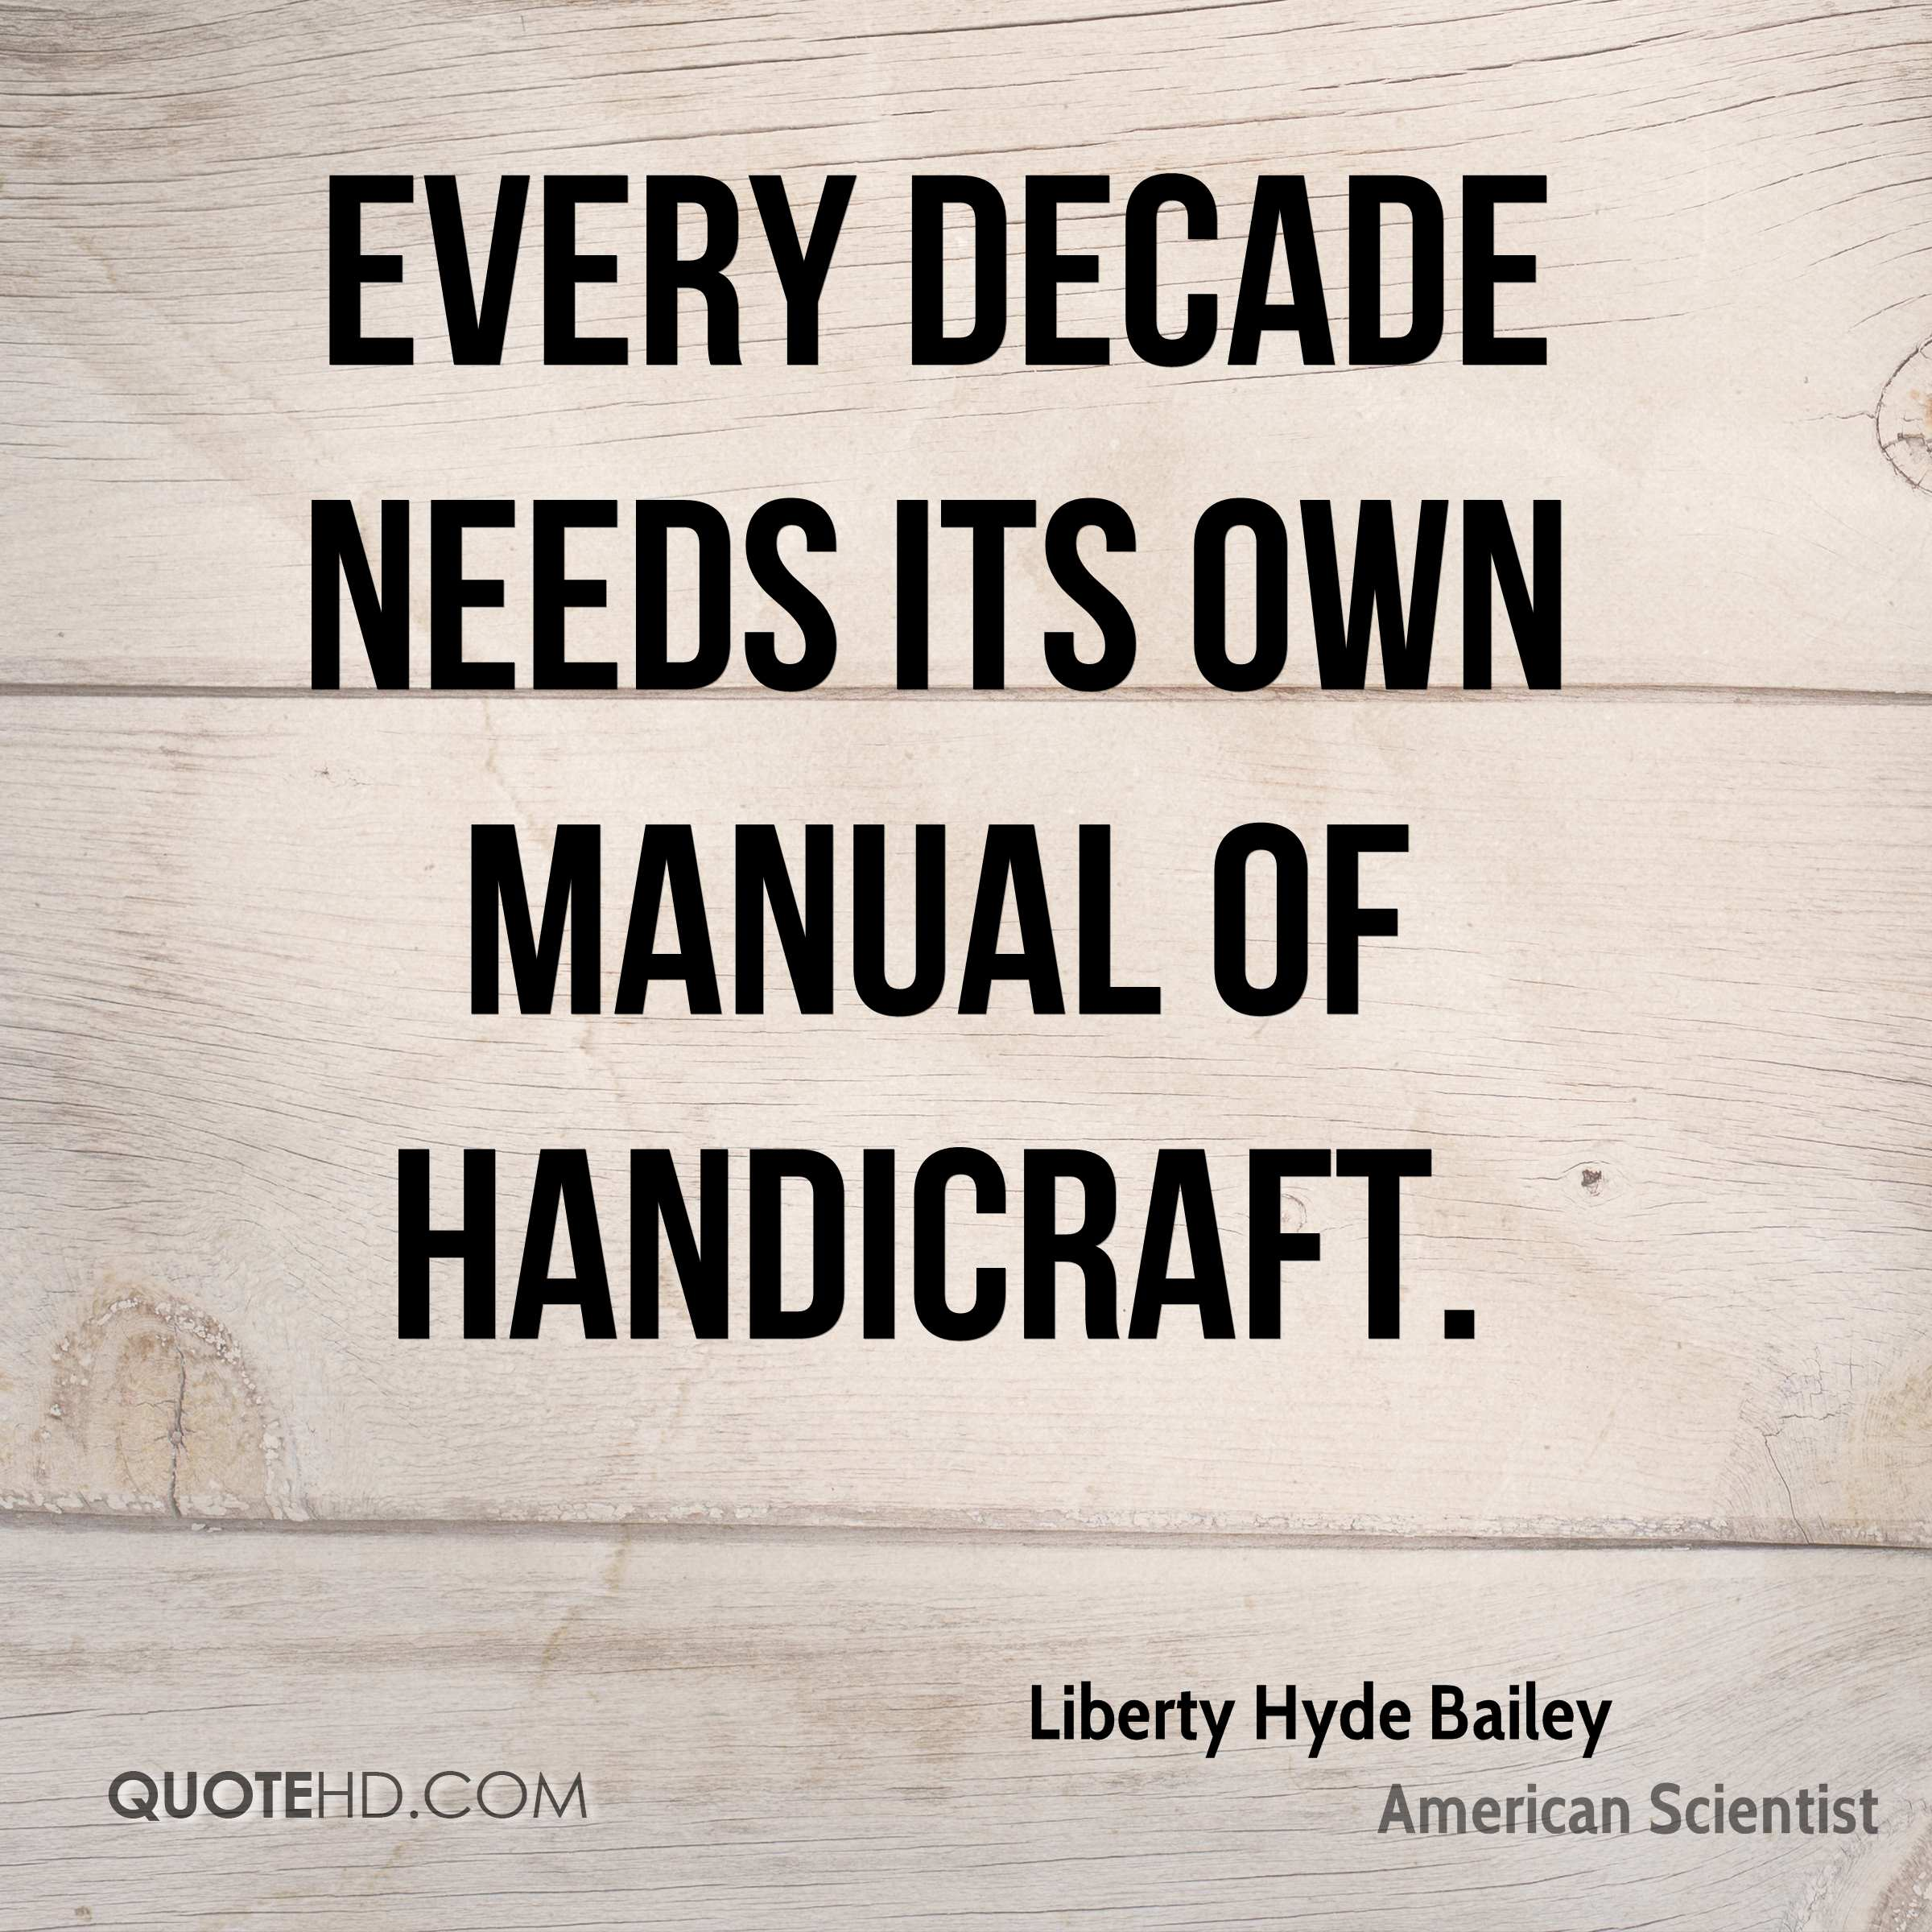 Every decade needs its own manual of handicraft.